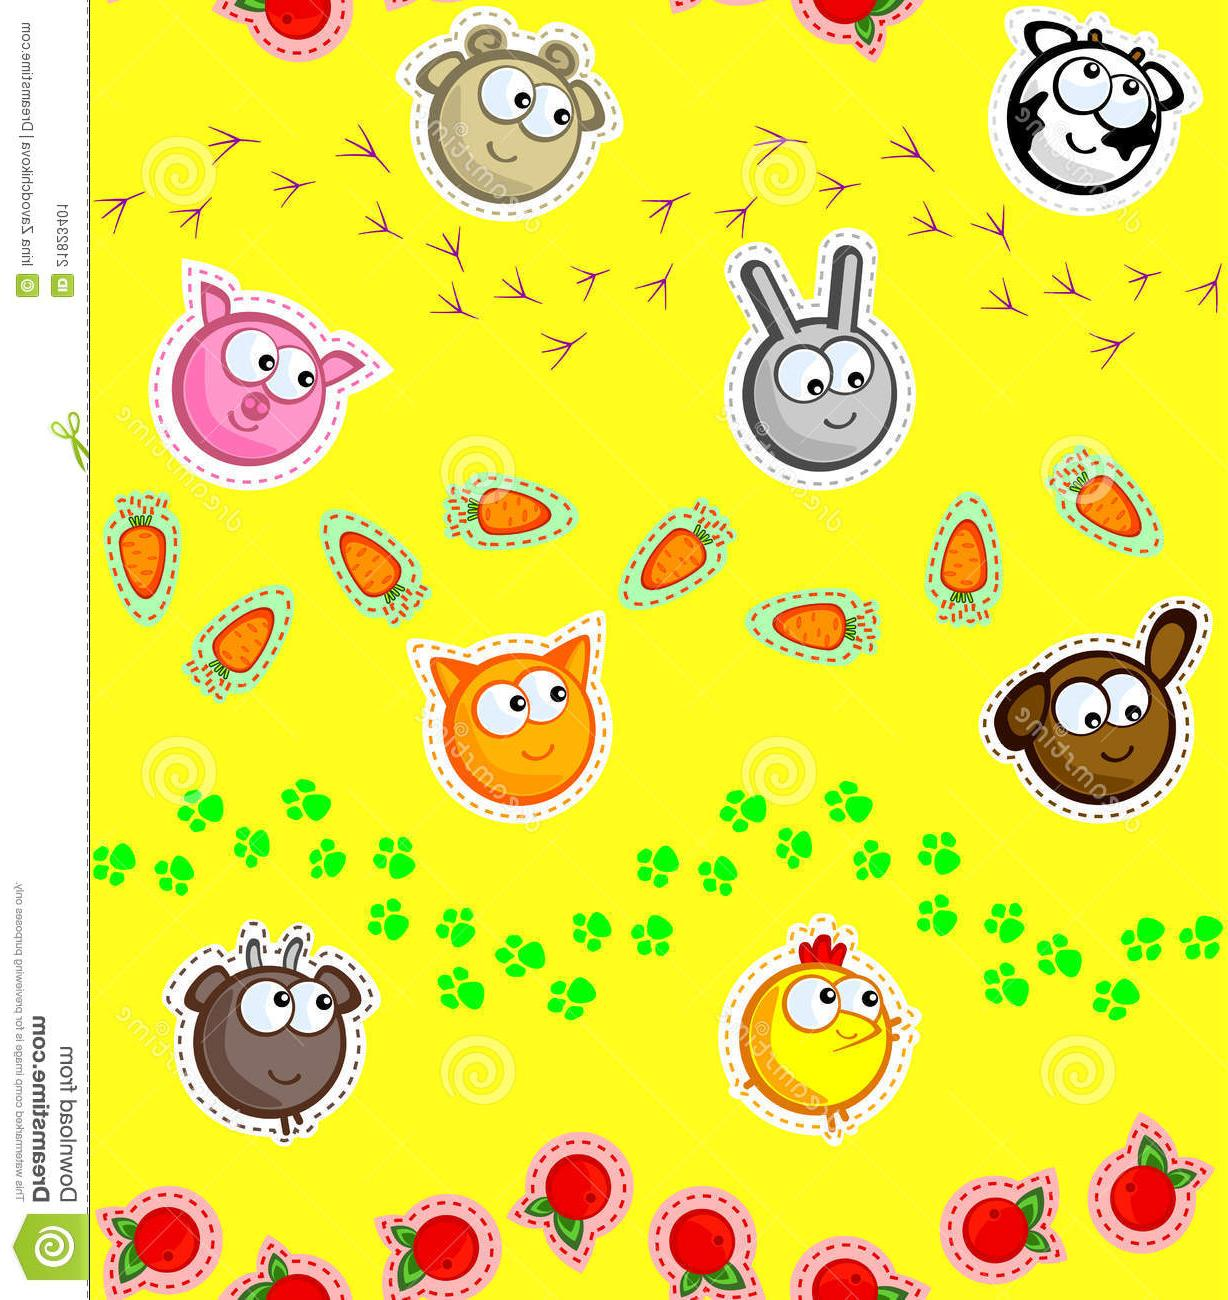 Best Farm Animal Applique Vector File Free » Free Vector Art.